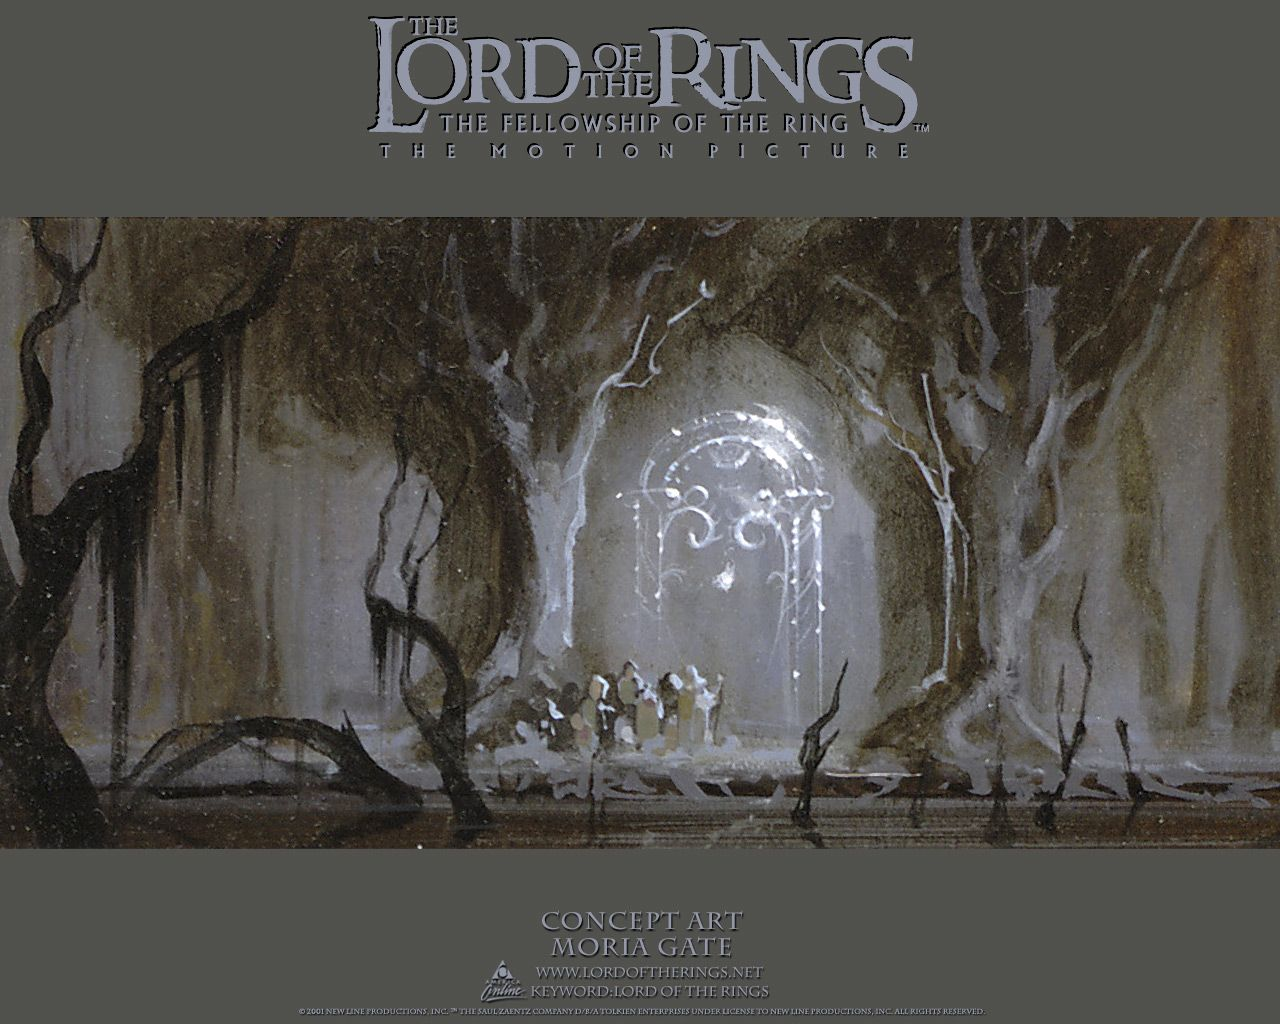 The Lord Of The Rings The Fellowship Of The Ring Concept